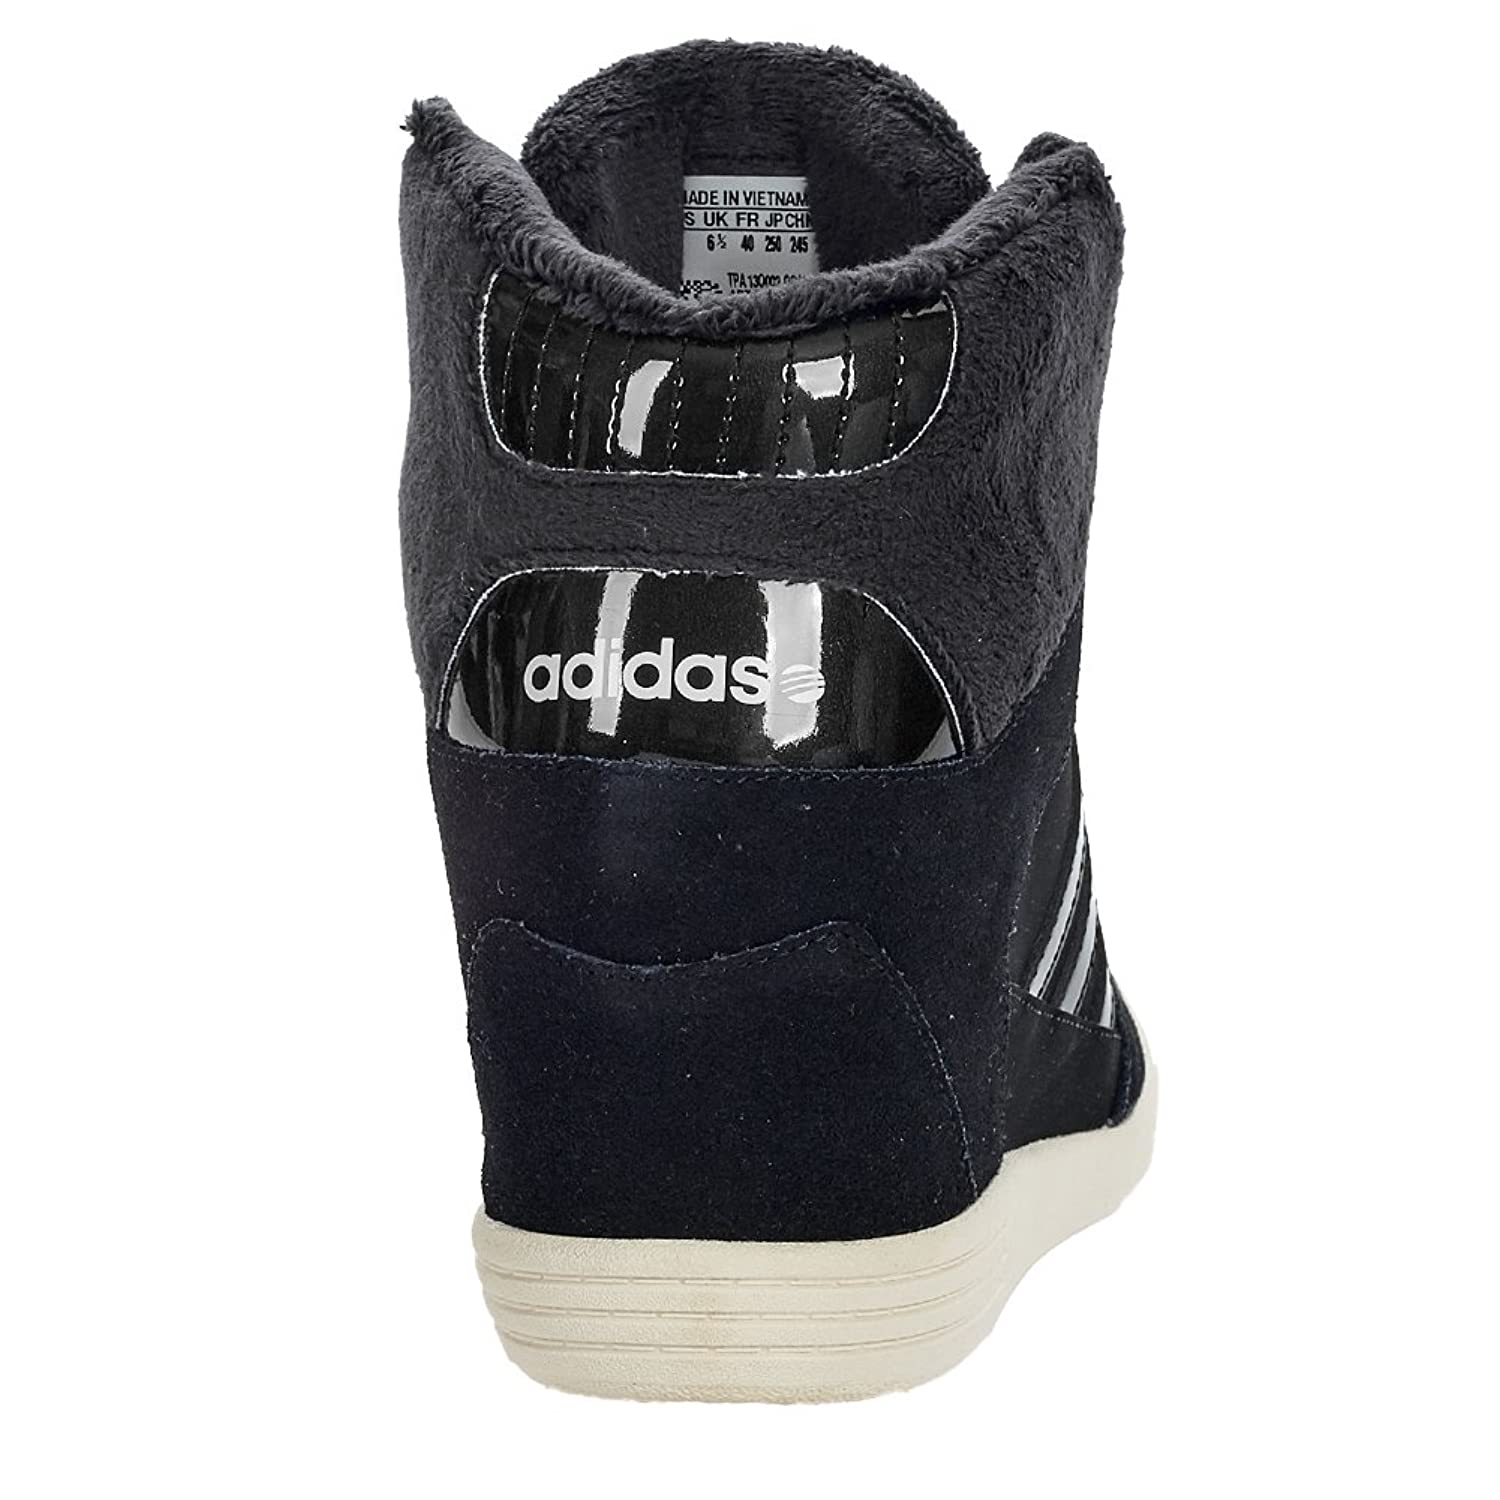 Neo Sneakeroutlet Weneo Super Wedge Femmes Chaussures Adidas qY4wxE8RY